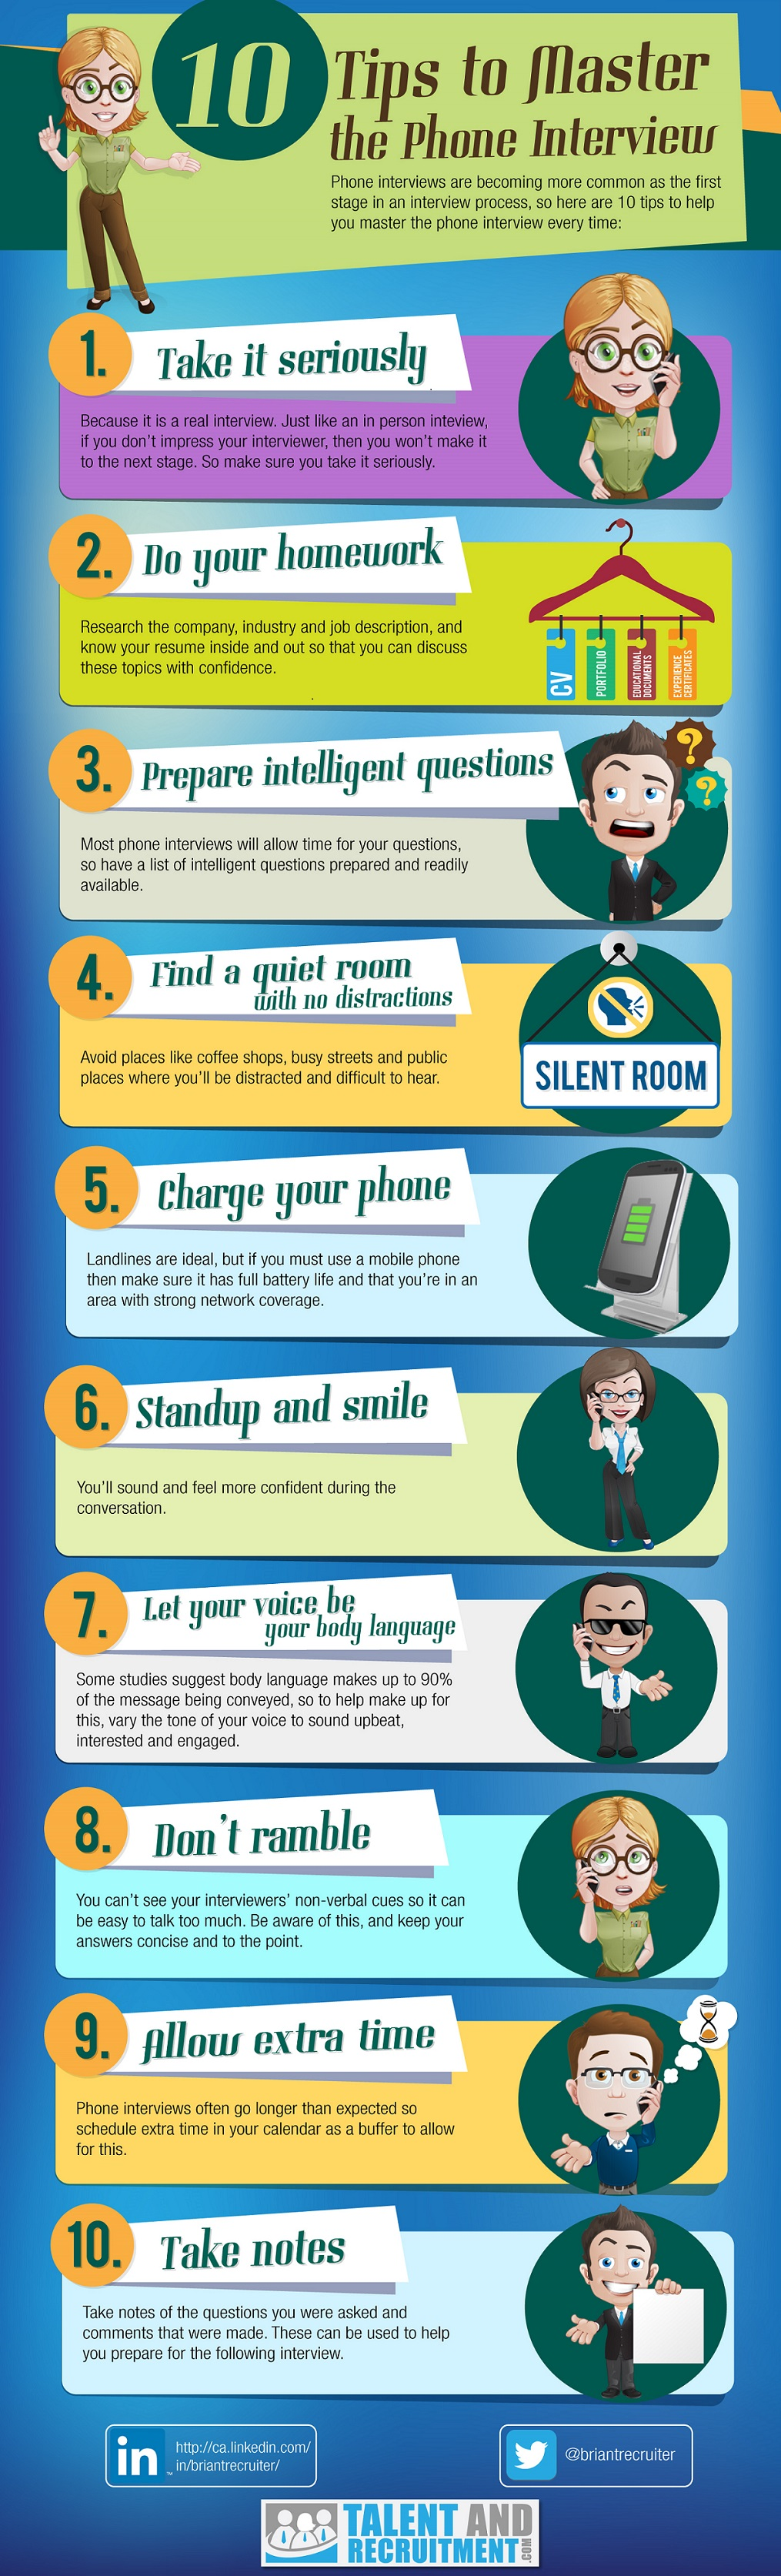 top tips for a great phone interview infographic org related telephone interview tips